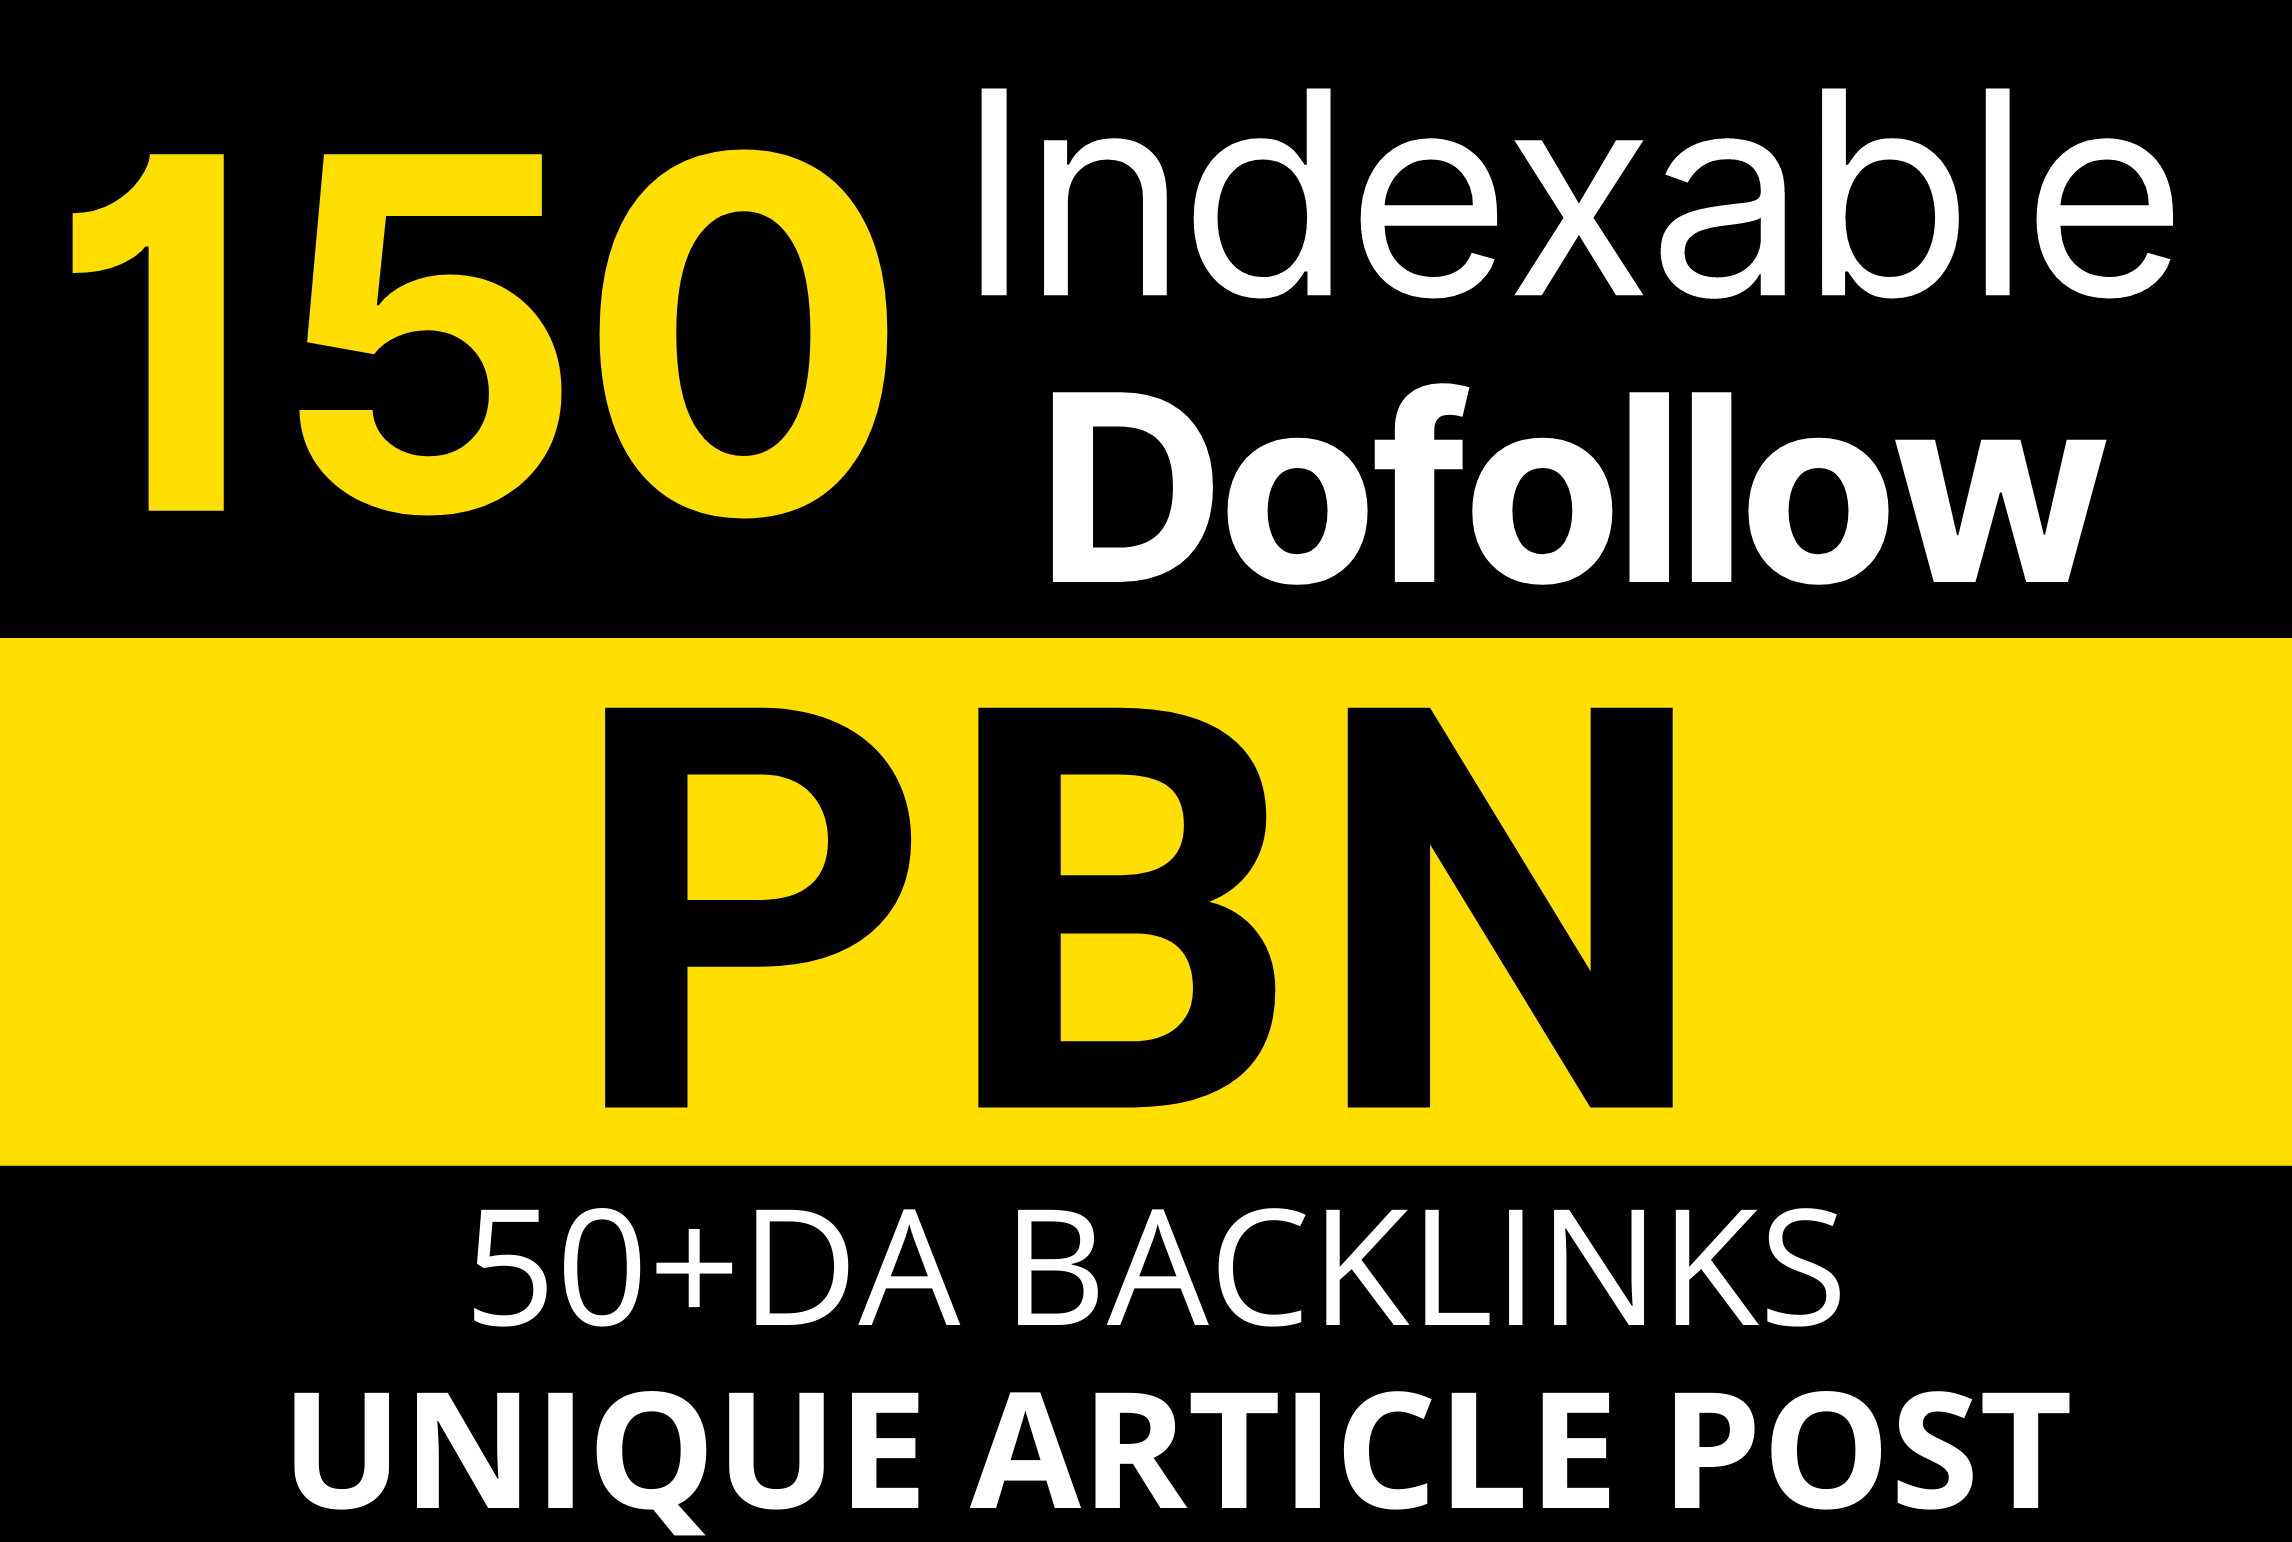 150 DOFOLLOW INDEXABLE PBN POST WITH UNIQUE ARTICLE FOR GOOGLE RANKING